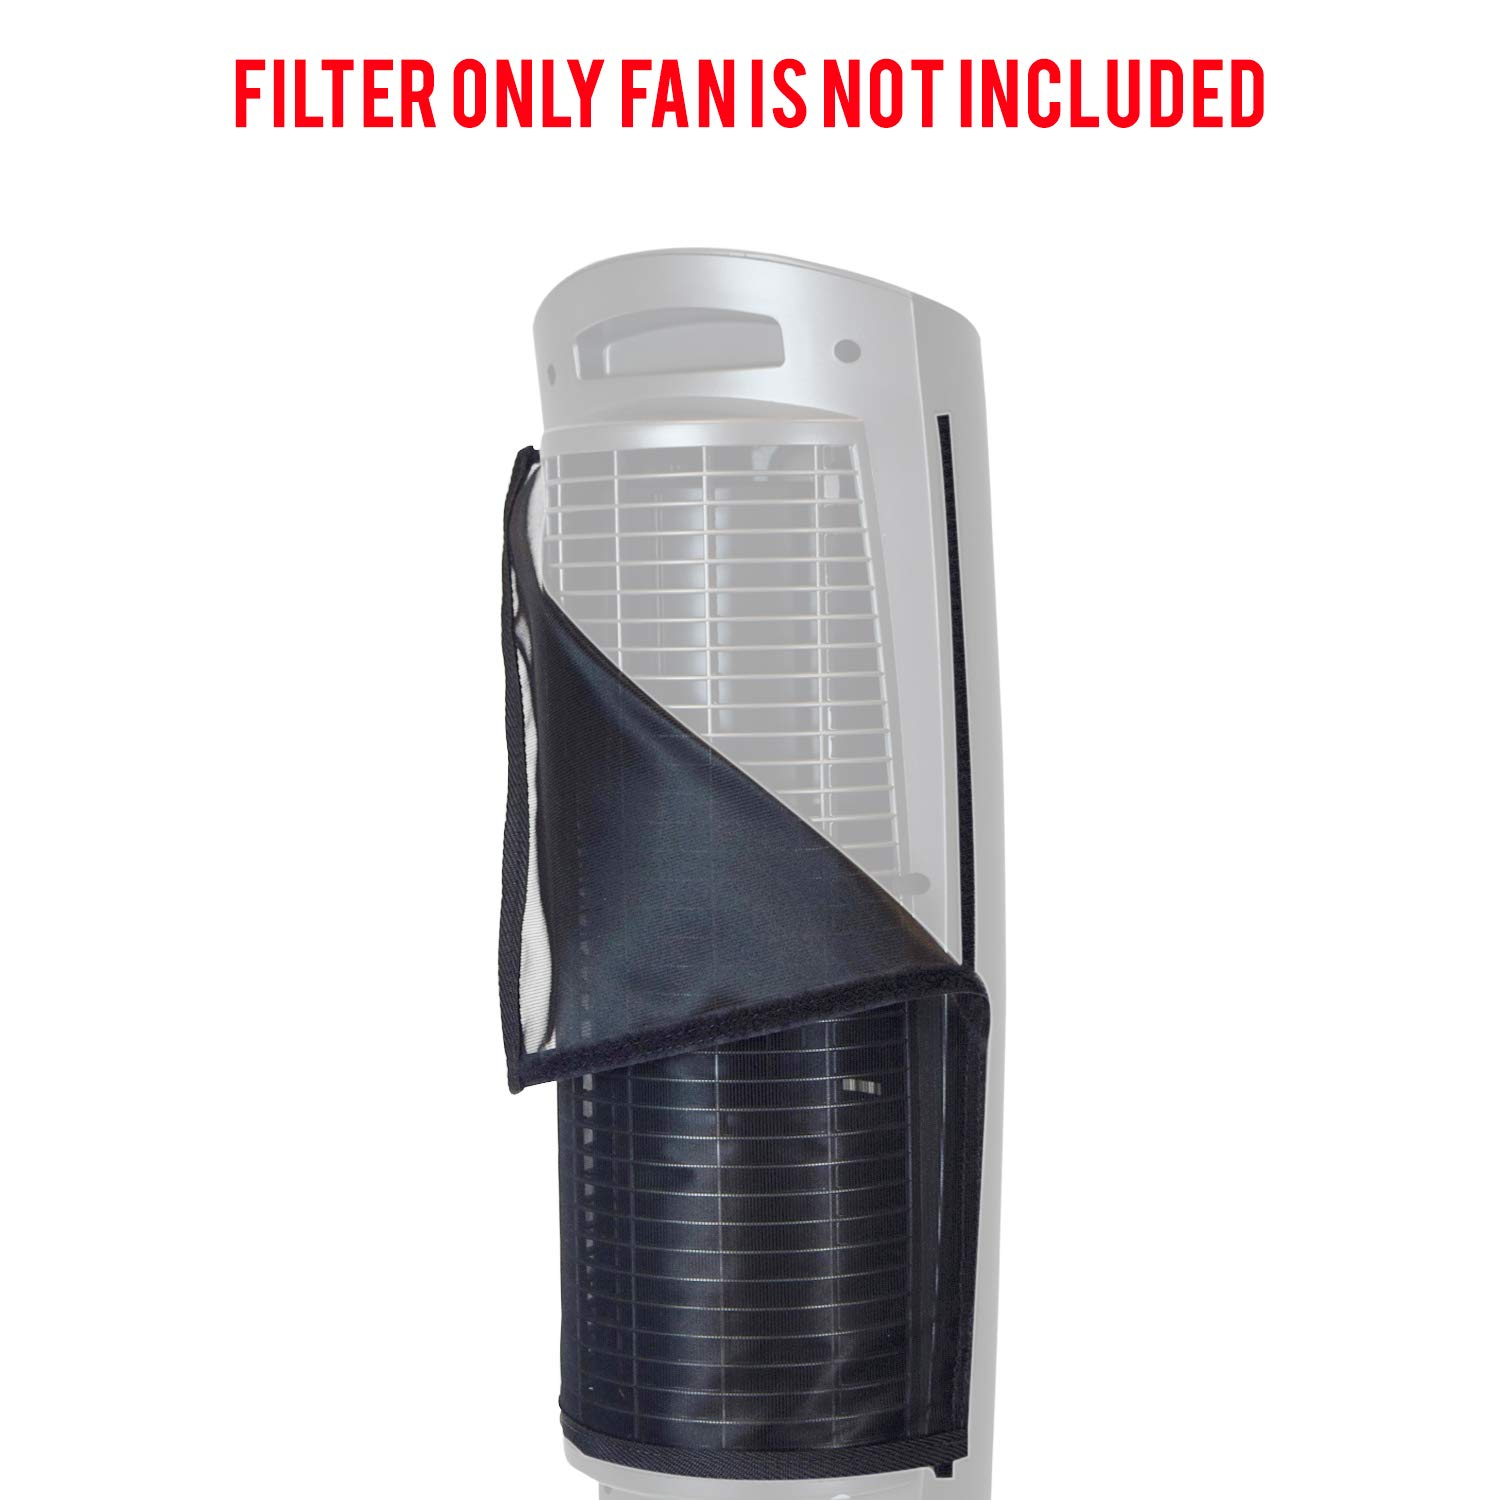 Lasko 2554, 2551 42'' Wind Curve Fan Filter fits perfect on this fan keeps your fan clean and lasting longer effective at Filtering Airborne Pollen Dust Mold Spores Pet Dander Reusable WASHABLE US Made